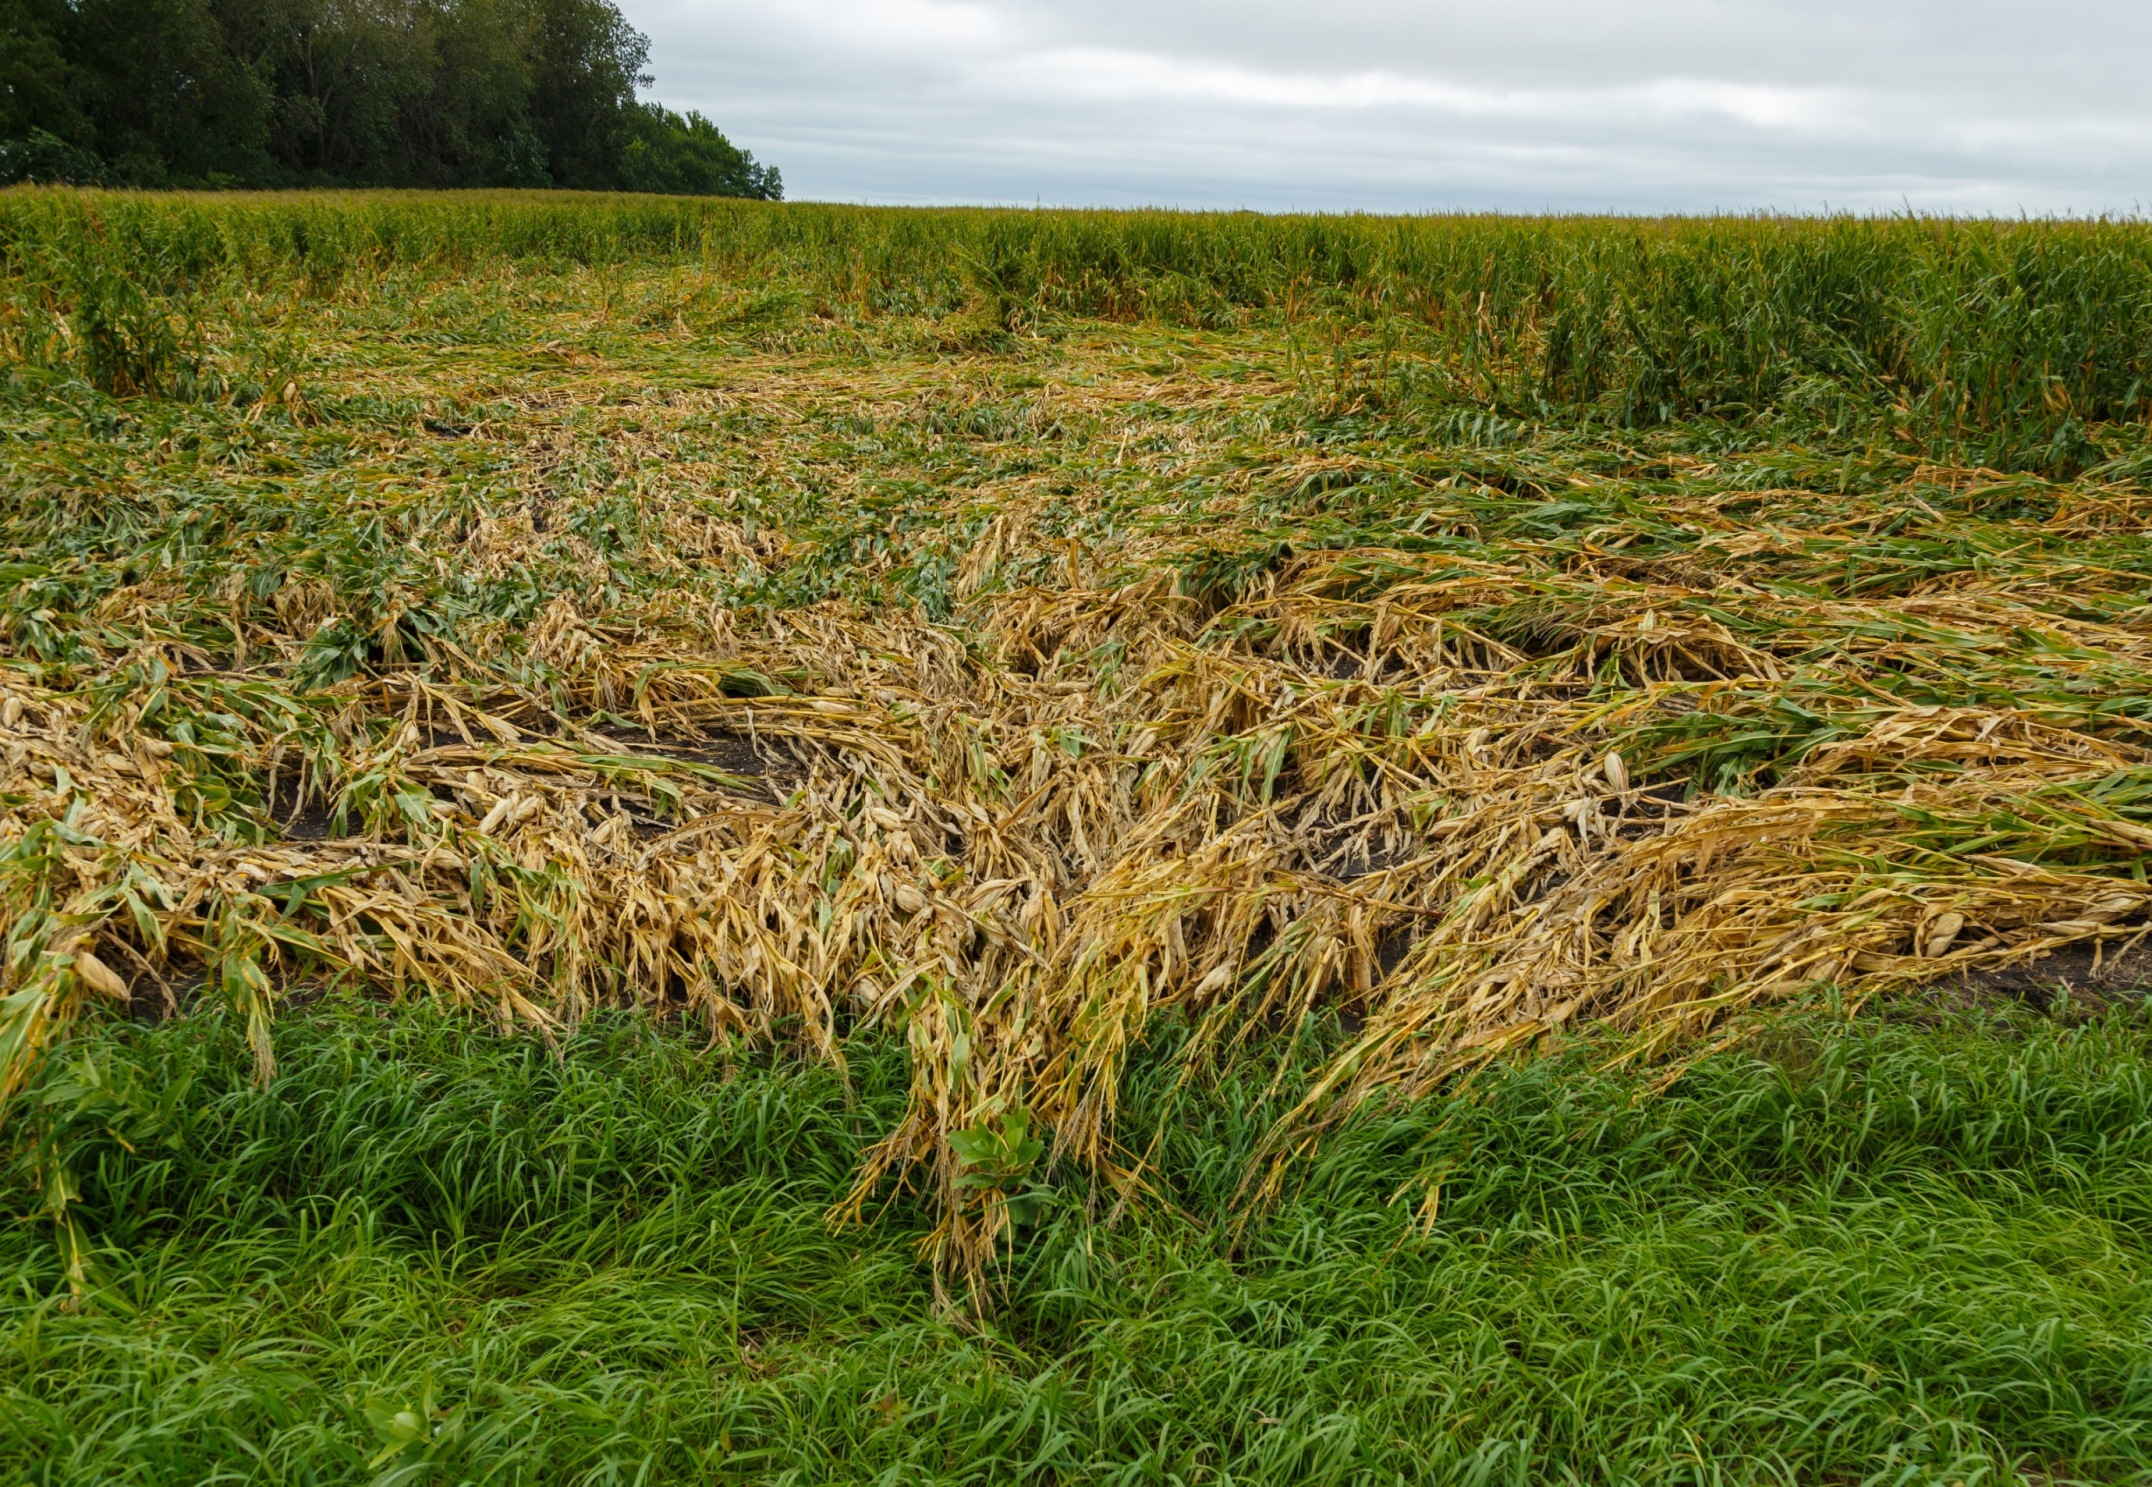 Convergent damage path through corn for one of the ground-surveyed tornadoes on September 10, 2014 just north of Dayton in Webster County.